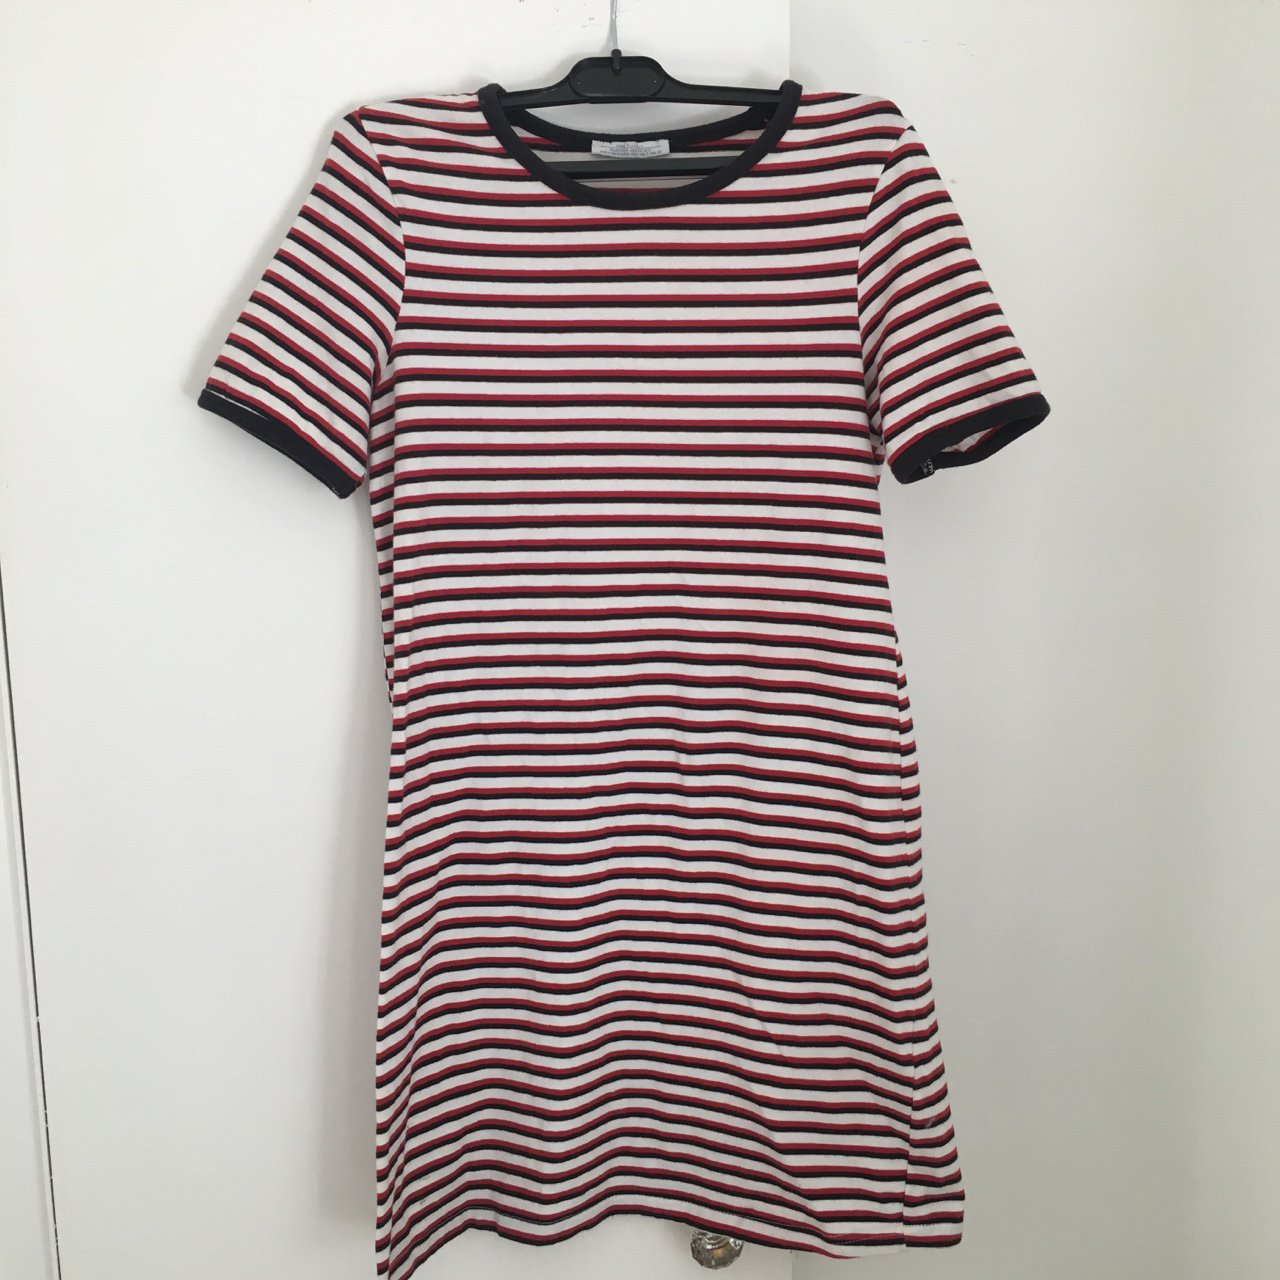 931d89848c Red And White Striped T Shirt Dress – EDGE Engineering and ...